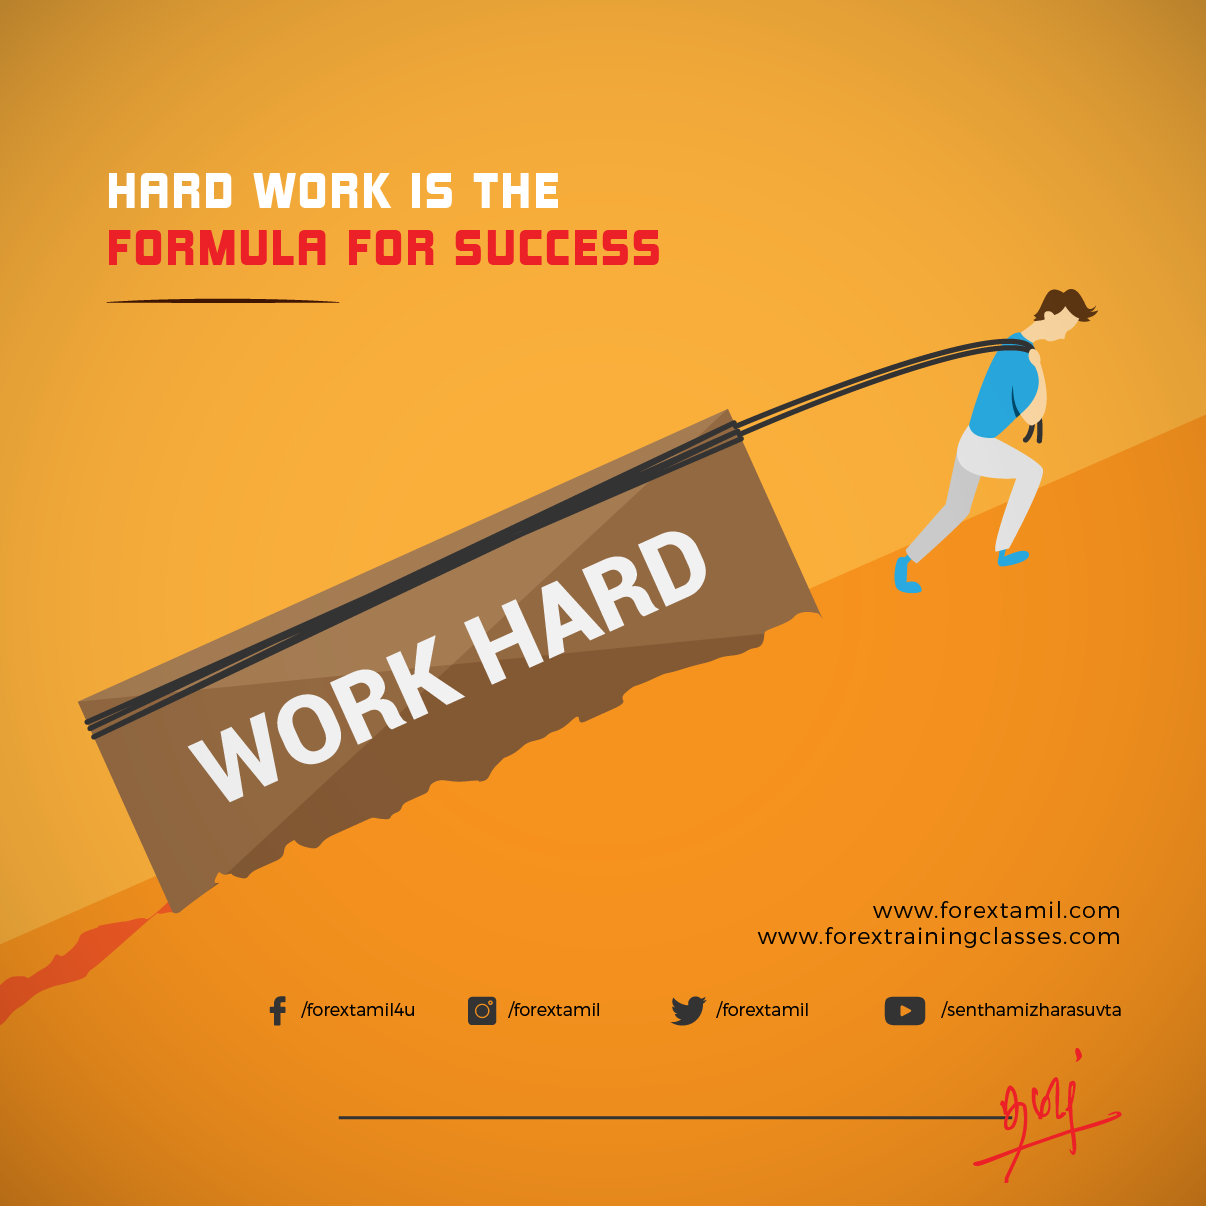 To achieve success work hard  Forex motivational quote